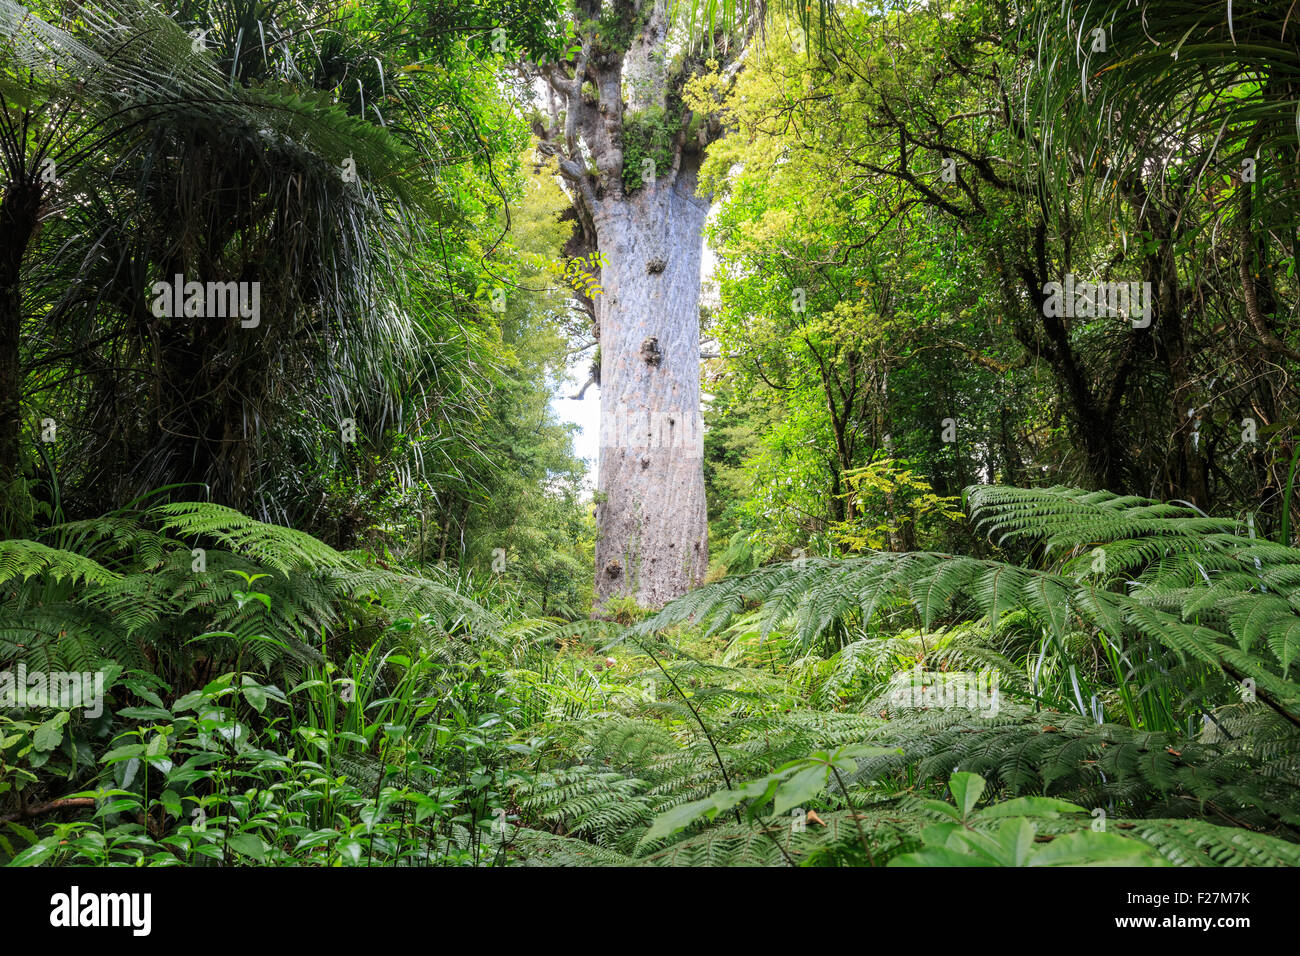 Tane Mahuta, the lord of the forest: one of the largest Kauri trees in Waipoua Kauri forest in New Zealand Stock Photo